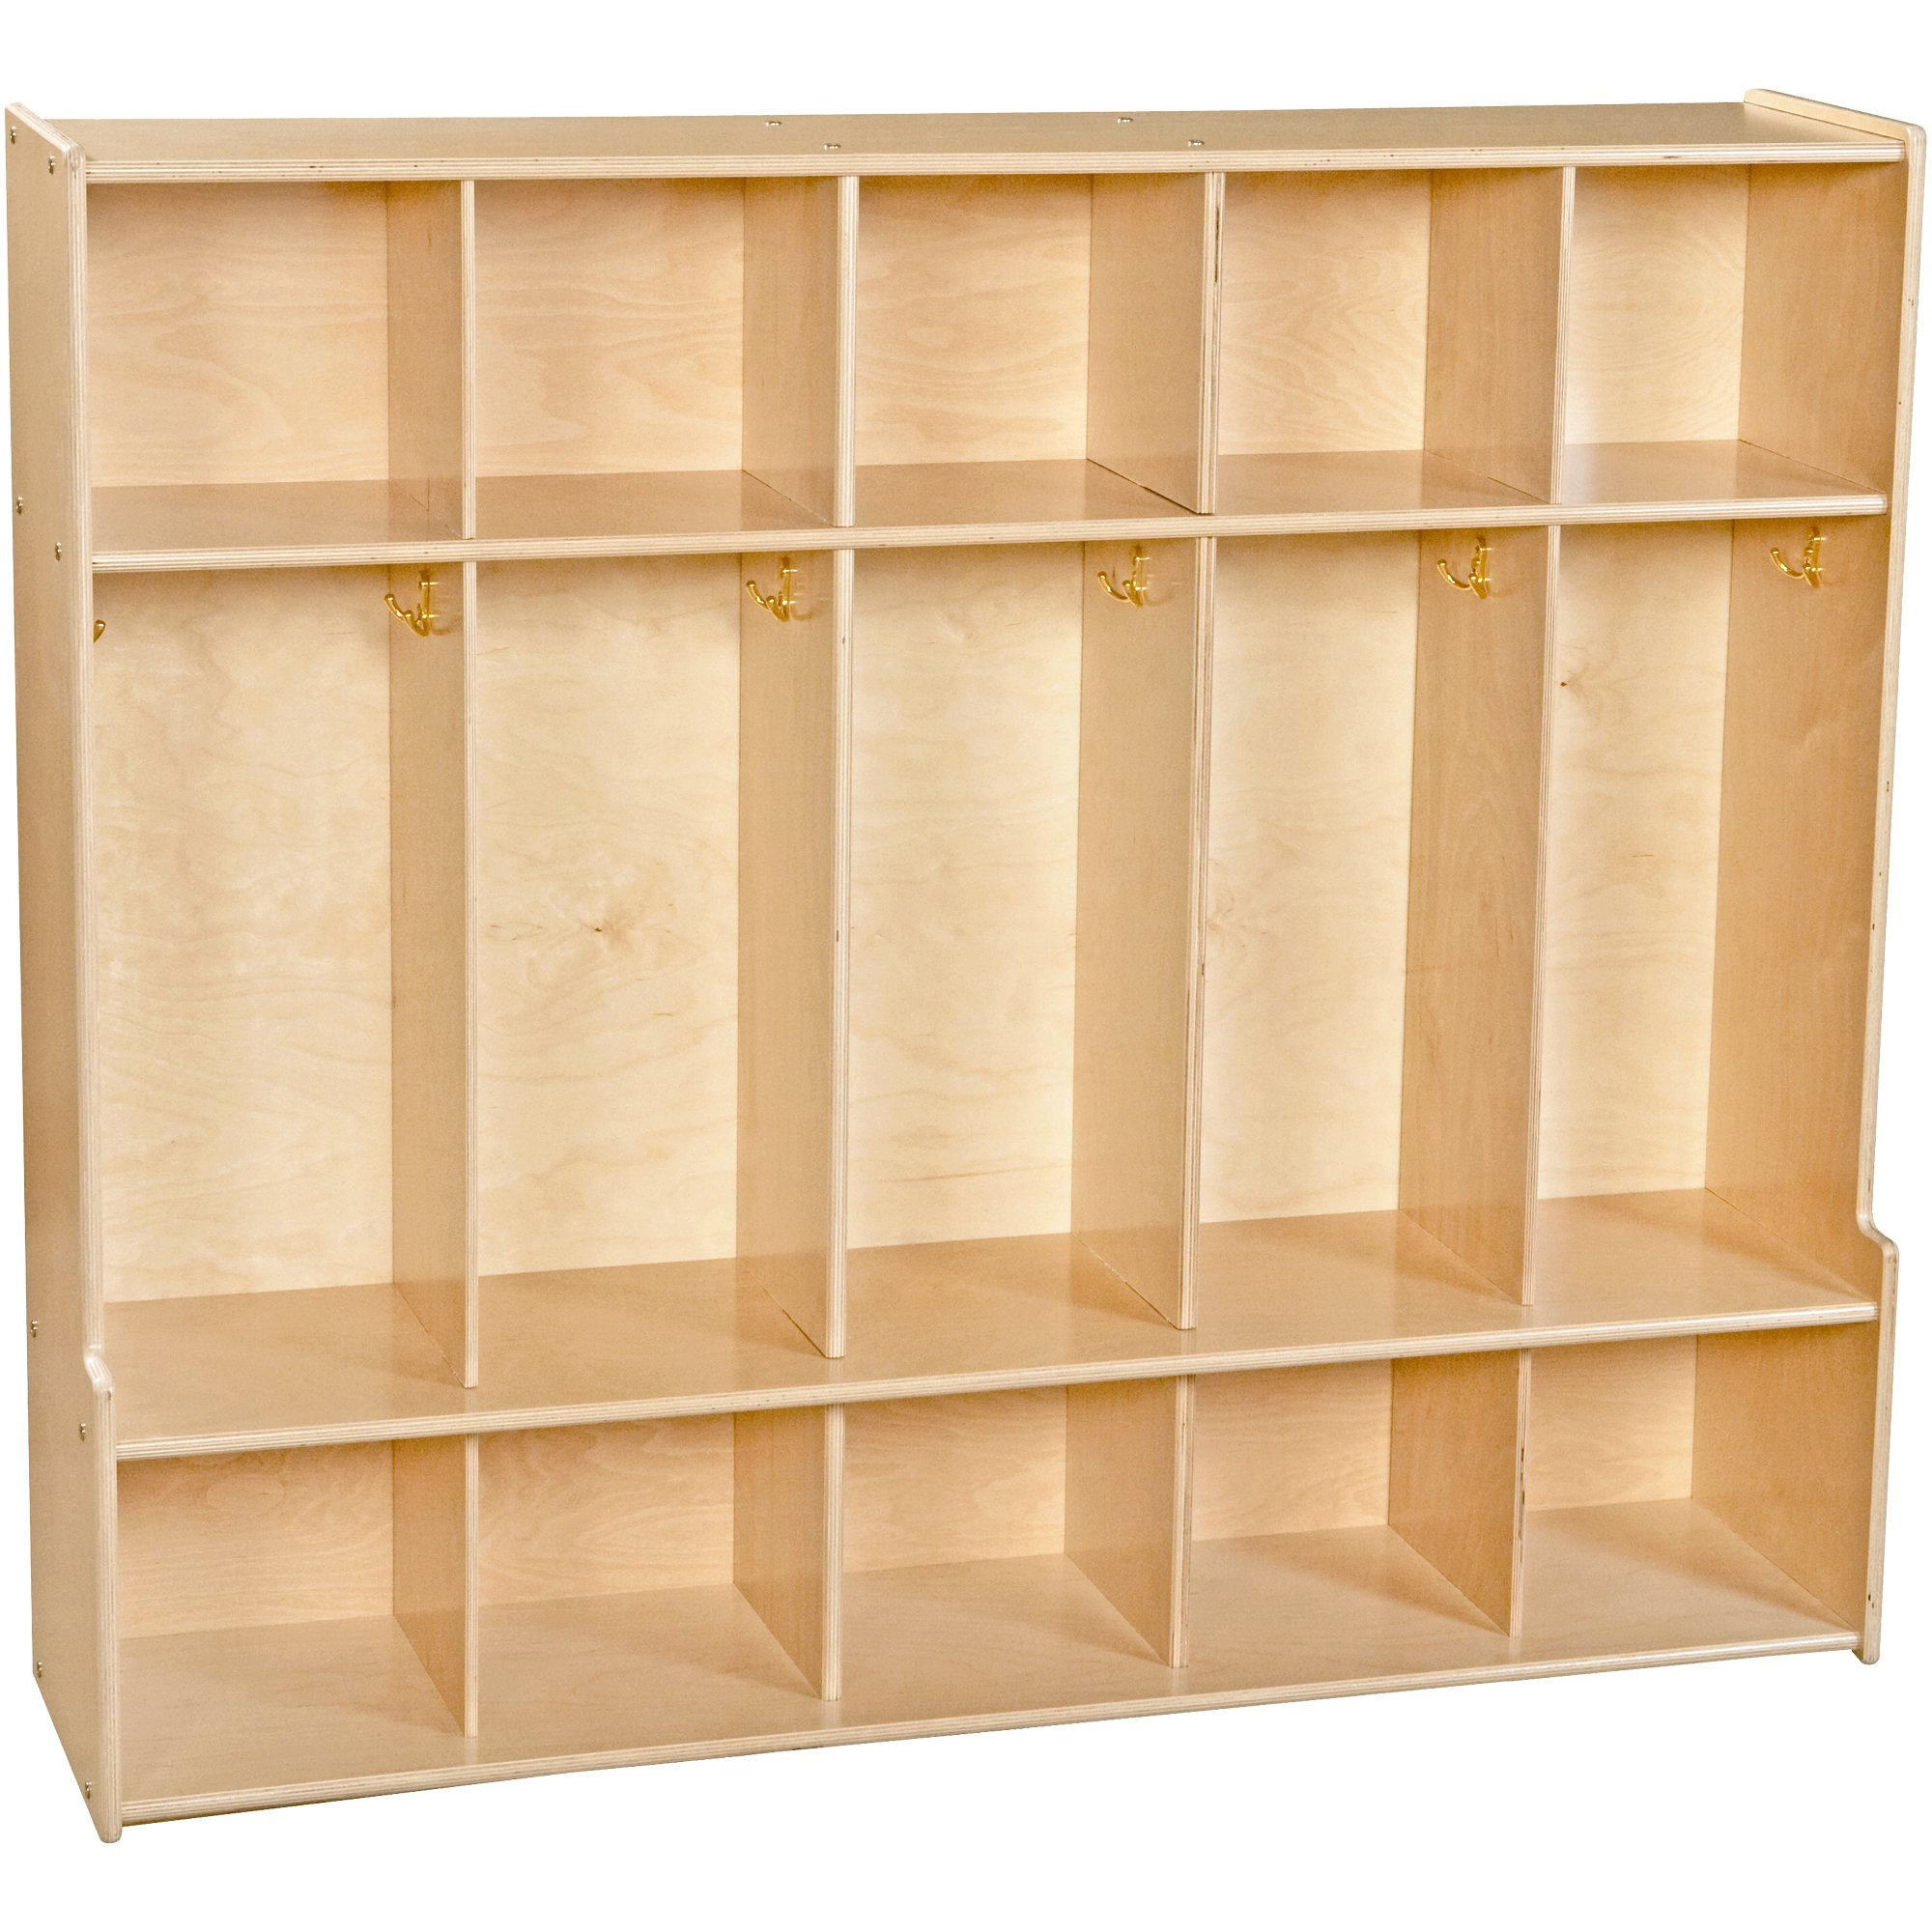 Sprogs Wooden Five-Section Locker Unit with Seat - Unassembled, SPG-4205